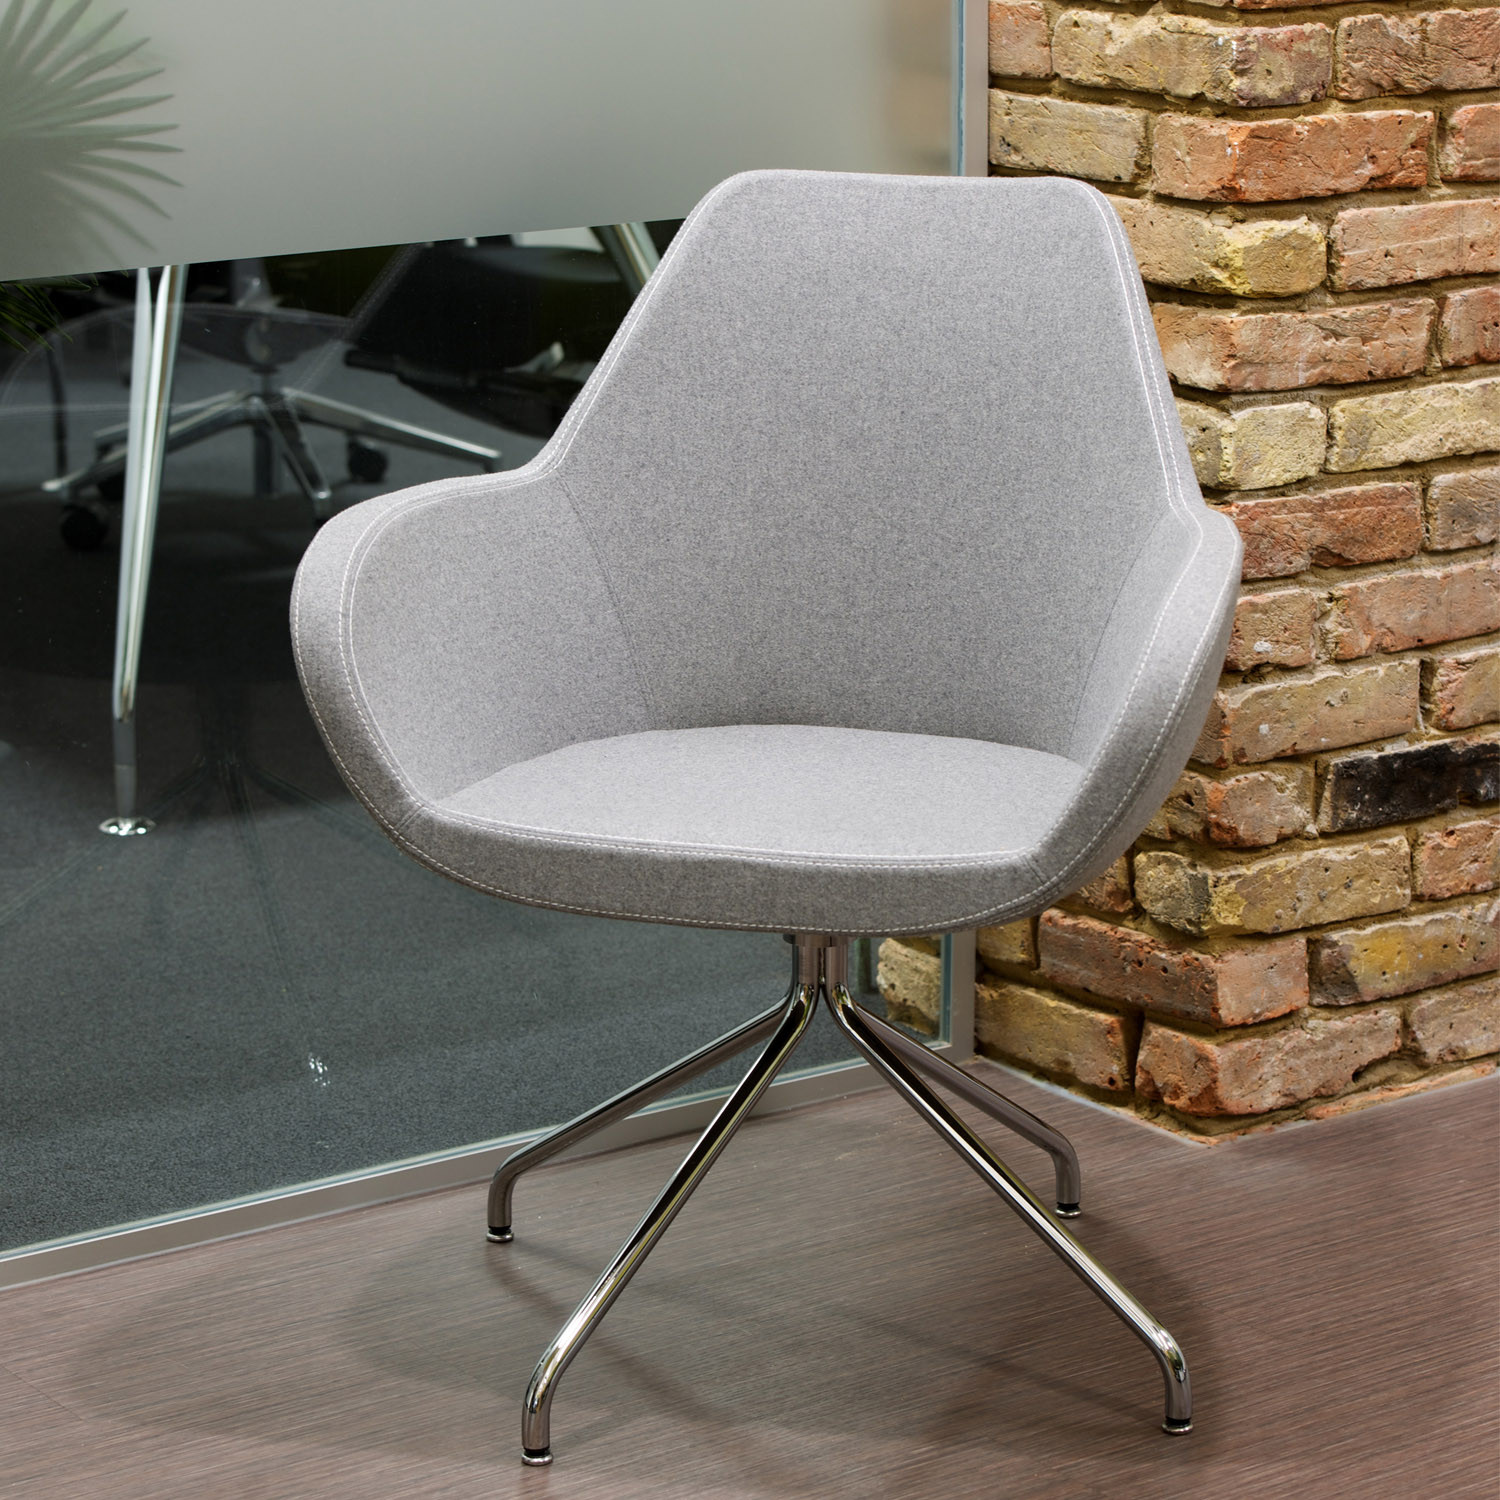 Reflex Meeting Chair from Spacestor